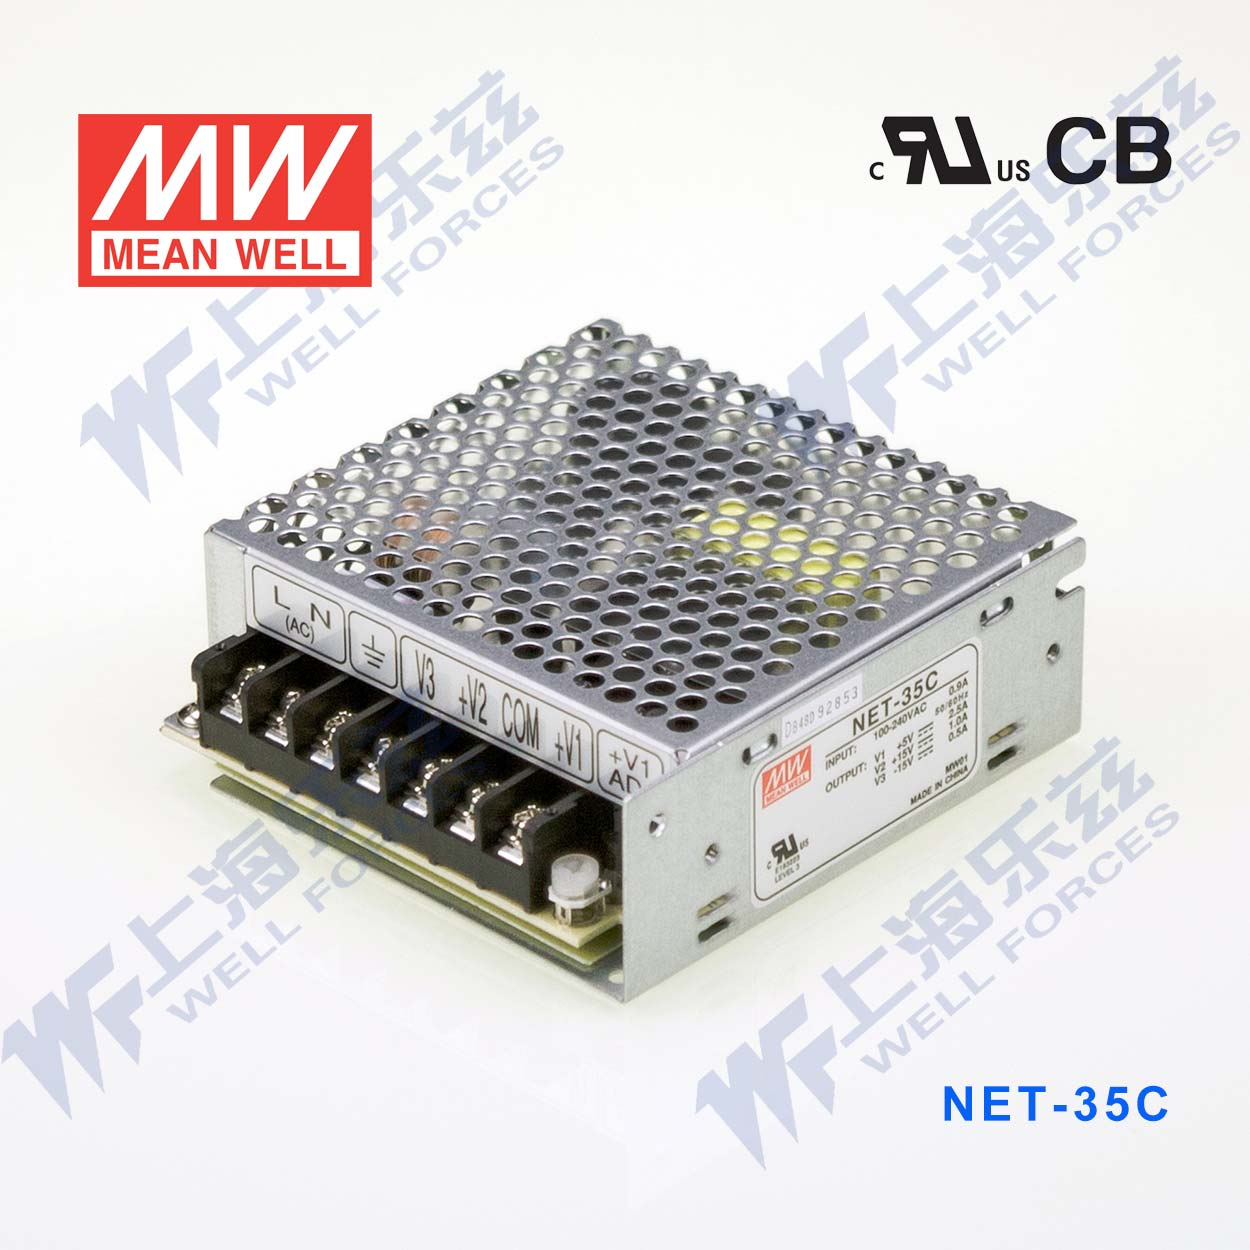 [Authorization] meanwell 35 w NET-35C a5v20-bit plus or minus 15 v [an authorized dealers to tax the sf ]